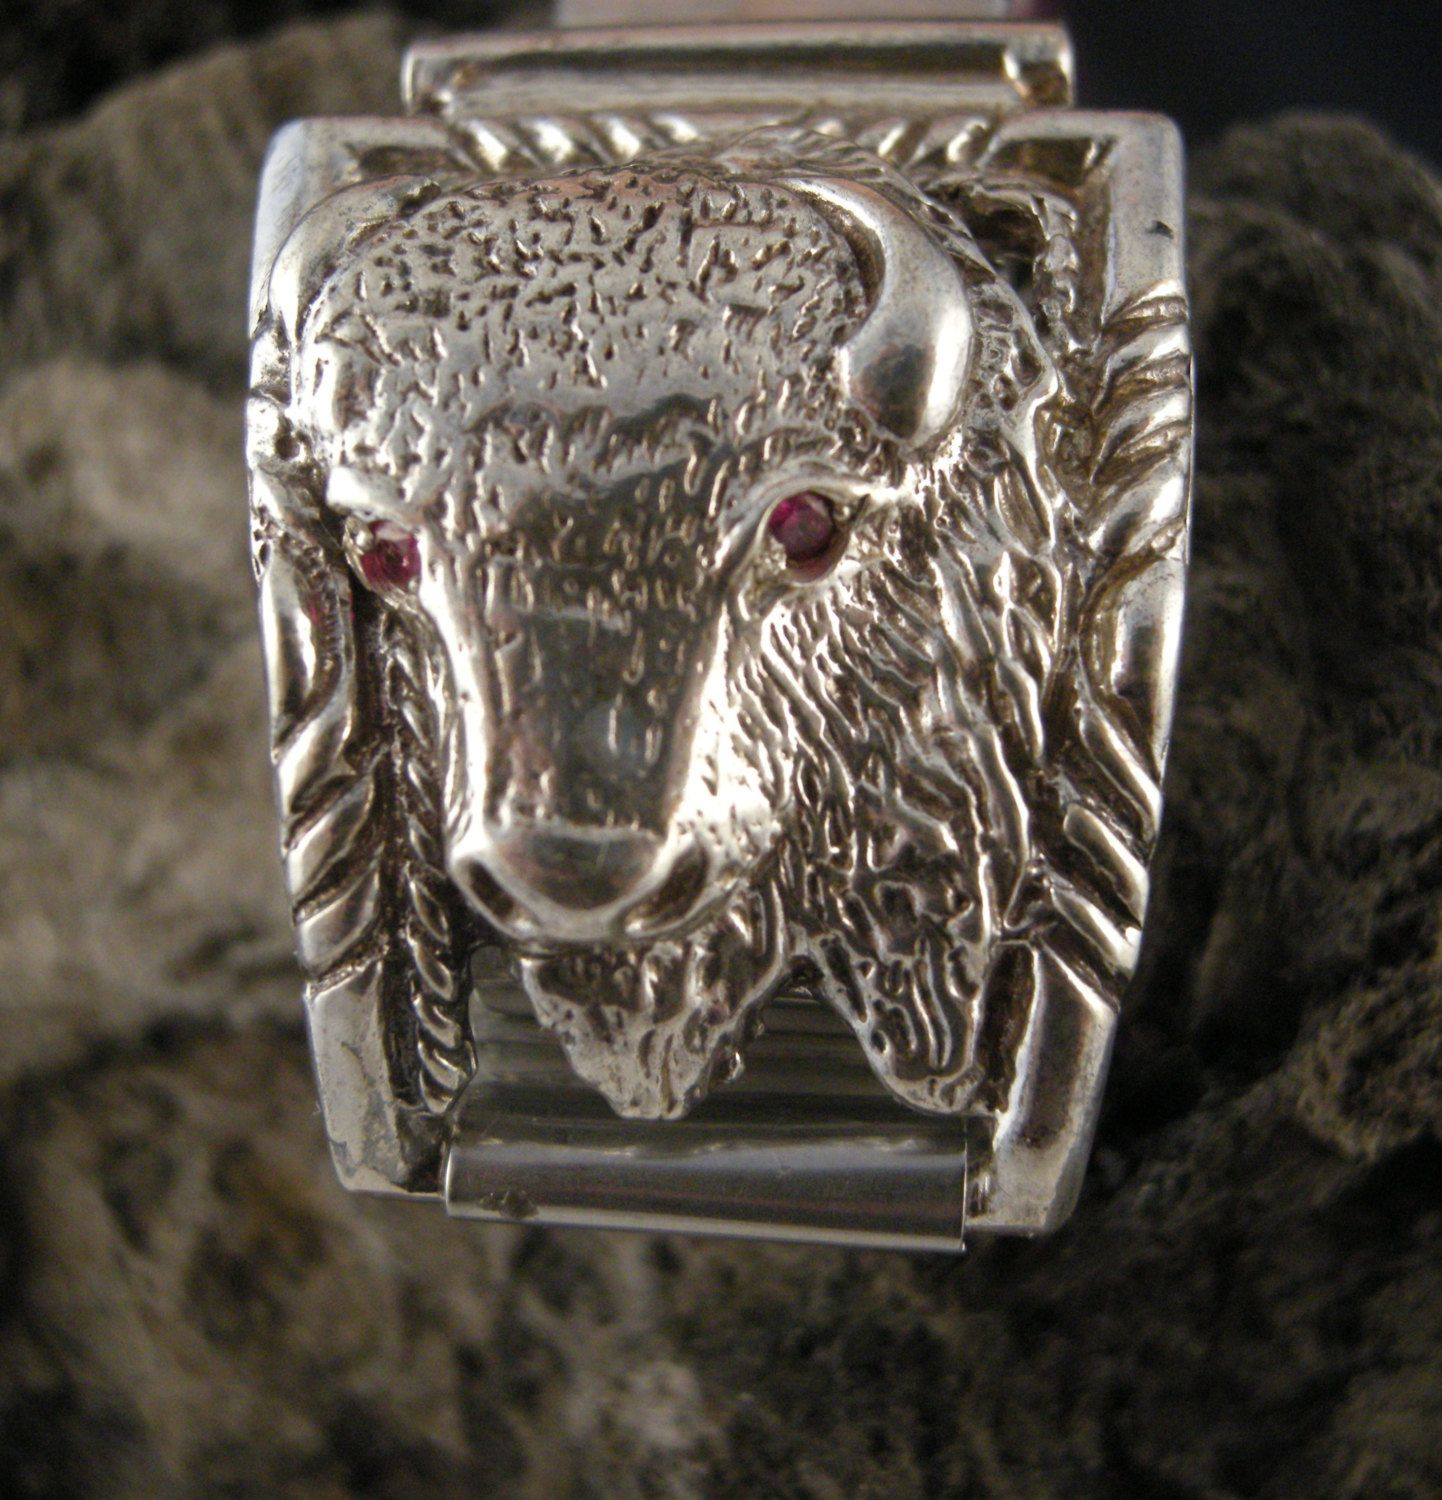 WATCH BAND TIPS, American Bison Watch Band TipsCast in Sterling Silver depicting Head of the American Buffalo Each eye Set With a 2mm Ruby by bopartpottery on Etsy